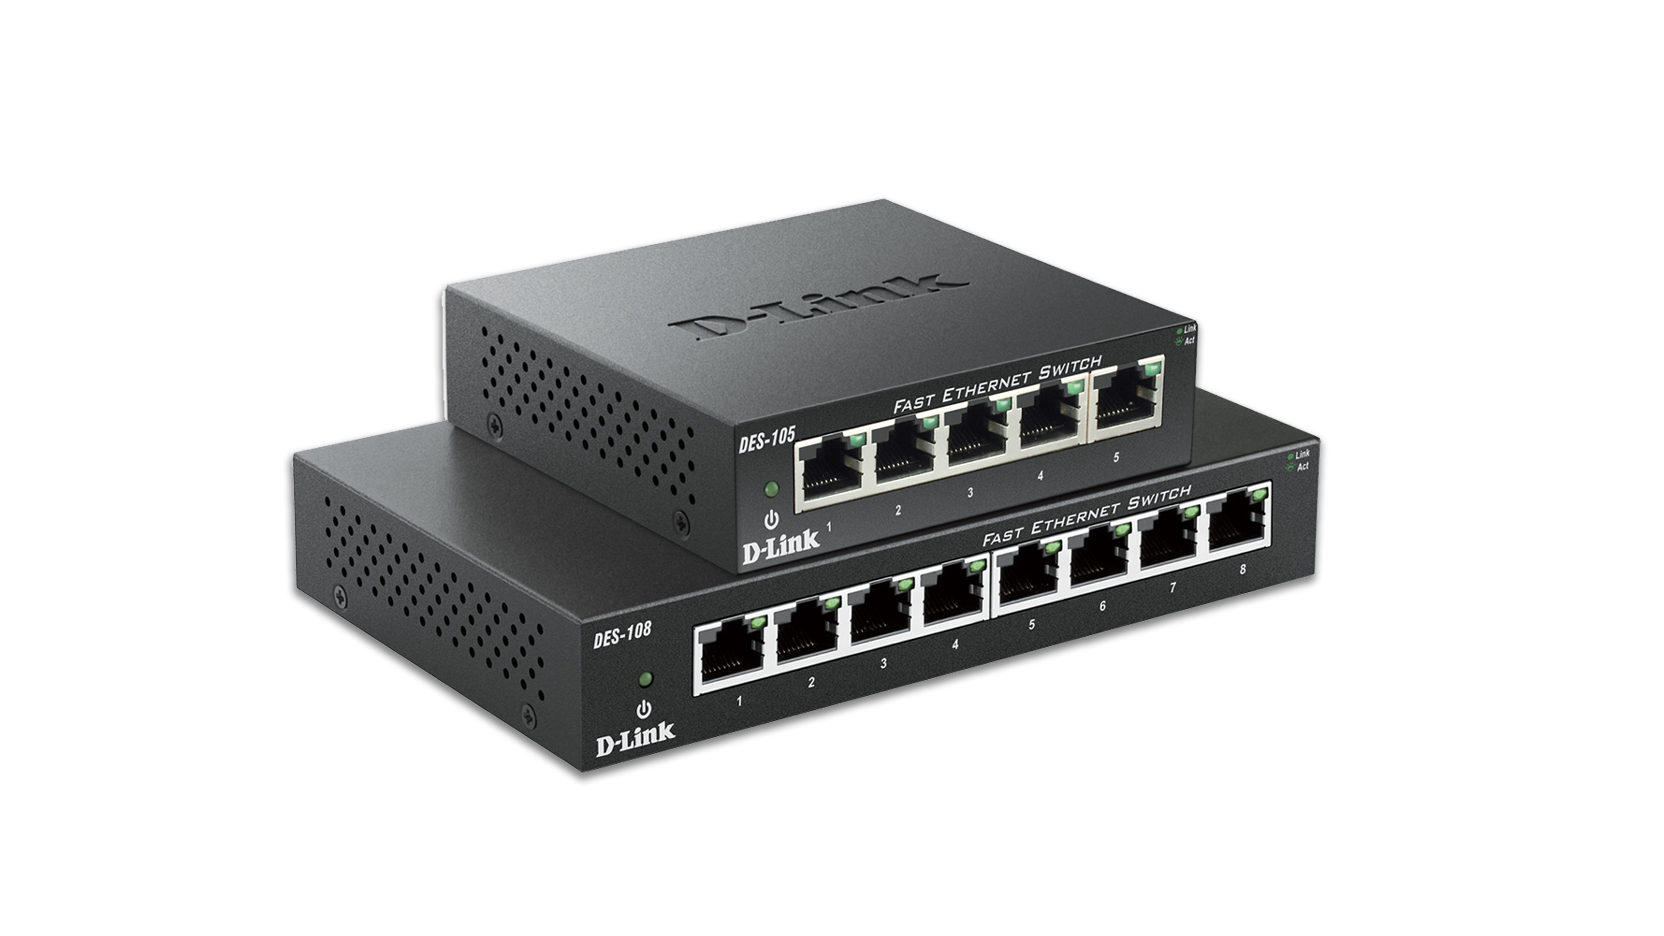 5-Port 10/100 Unmanaged Metal Desktop Switch (DES-105) | D-Link